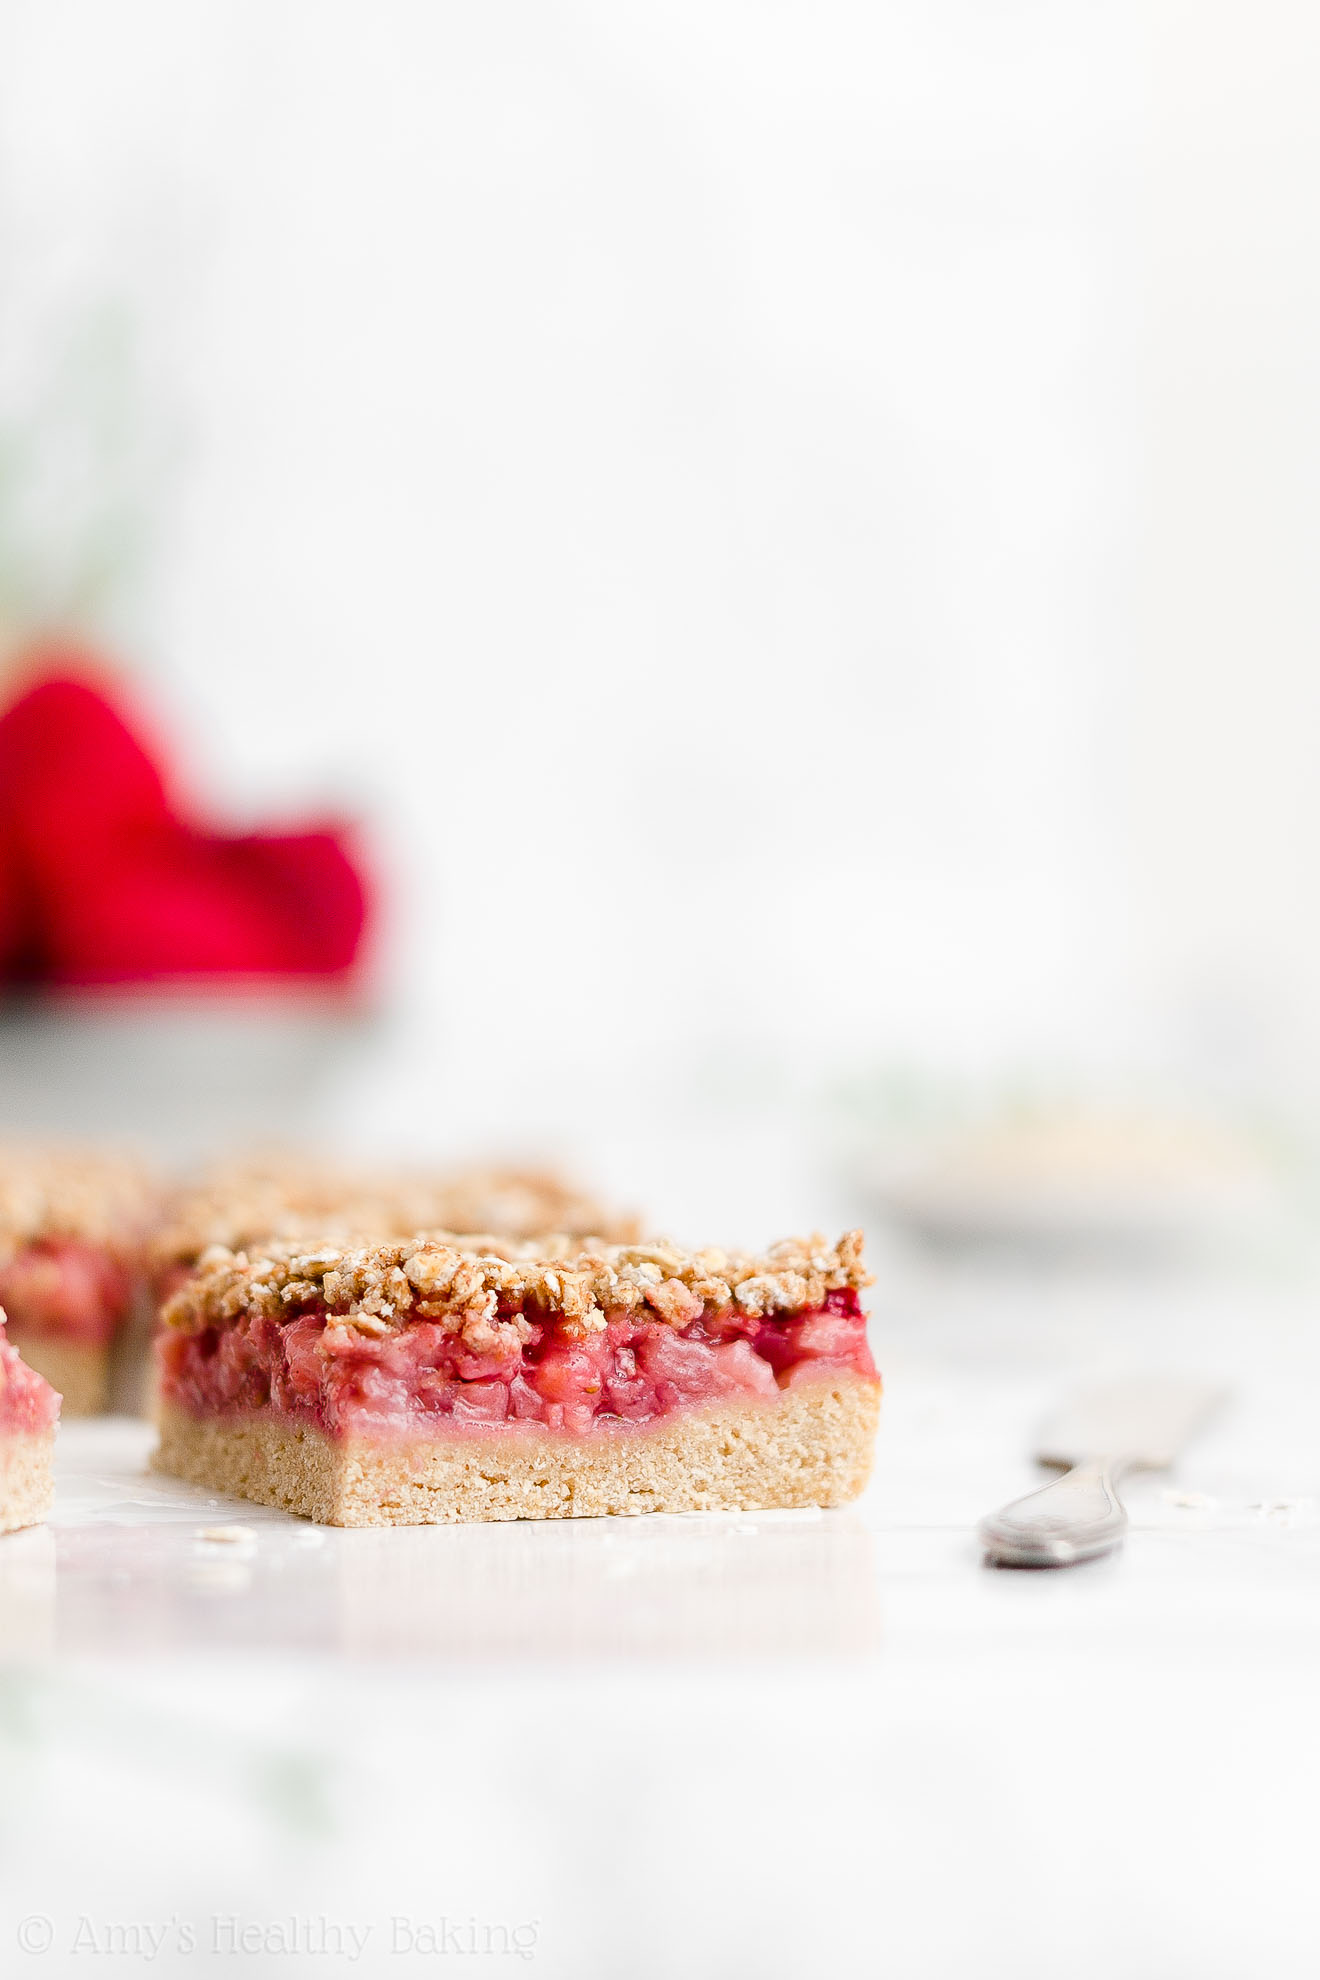 Best Healthy Whole Wheat Dairy Free Eggless Strawberry Oatmeal Crumble Bars